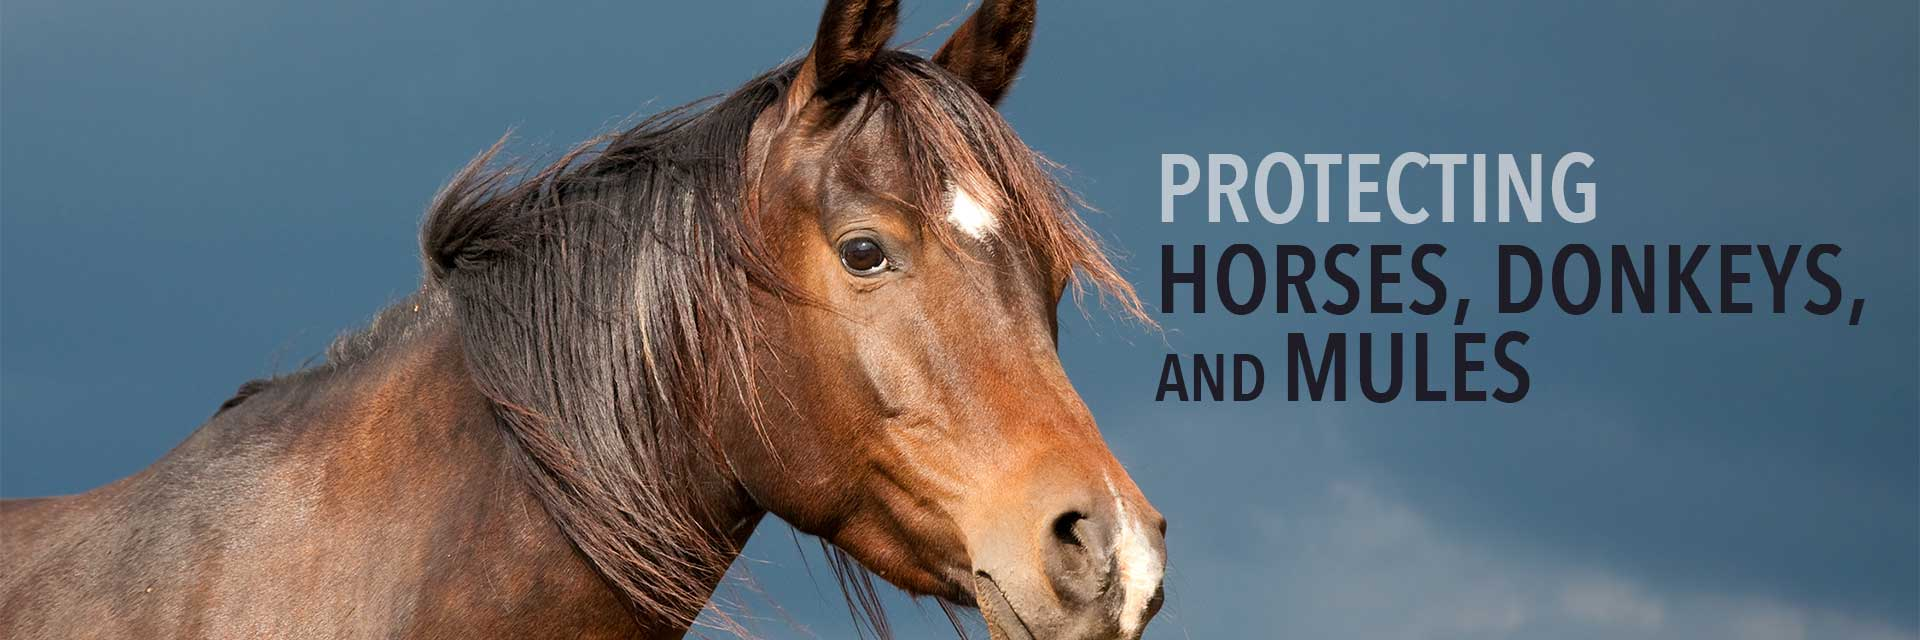 Protecting Horses, Donkeys, and Mules